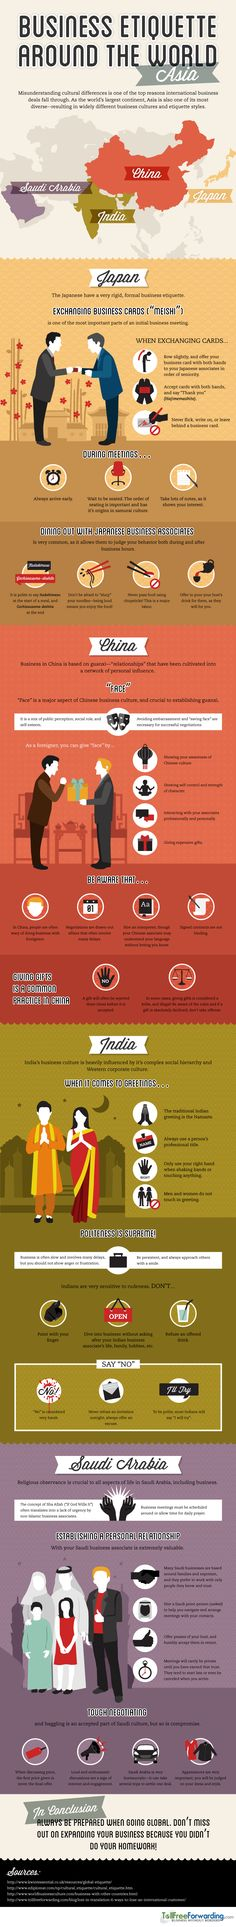 always good to know the business etiquette of other cultures for when you travel. Global Business Etiquette: AsiaIt's always good to know the business etiquette of other cultures for when you travel. Global Business, Business Travel, Business Tips, Business Cards, Marketing, Leadership, Etiquette And Manners, Business Education, Business School